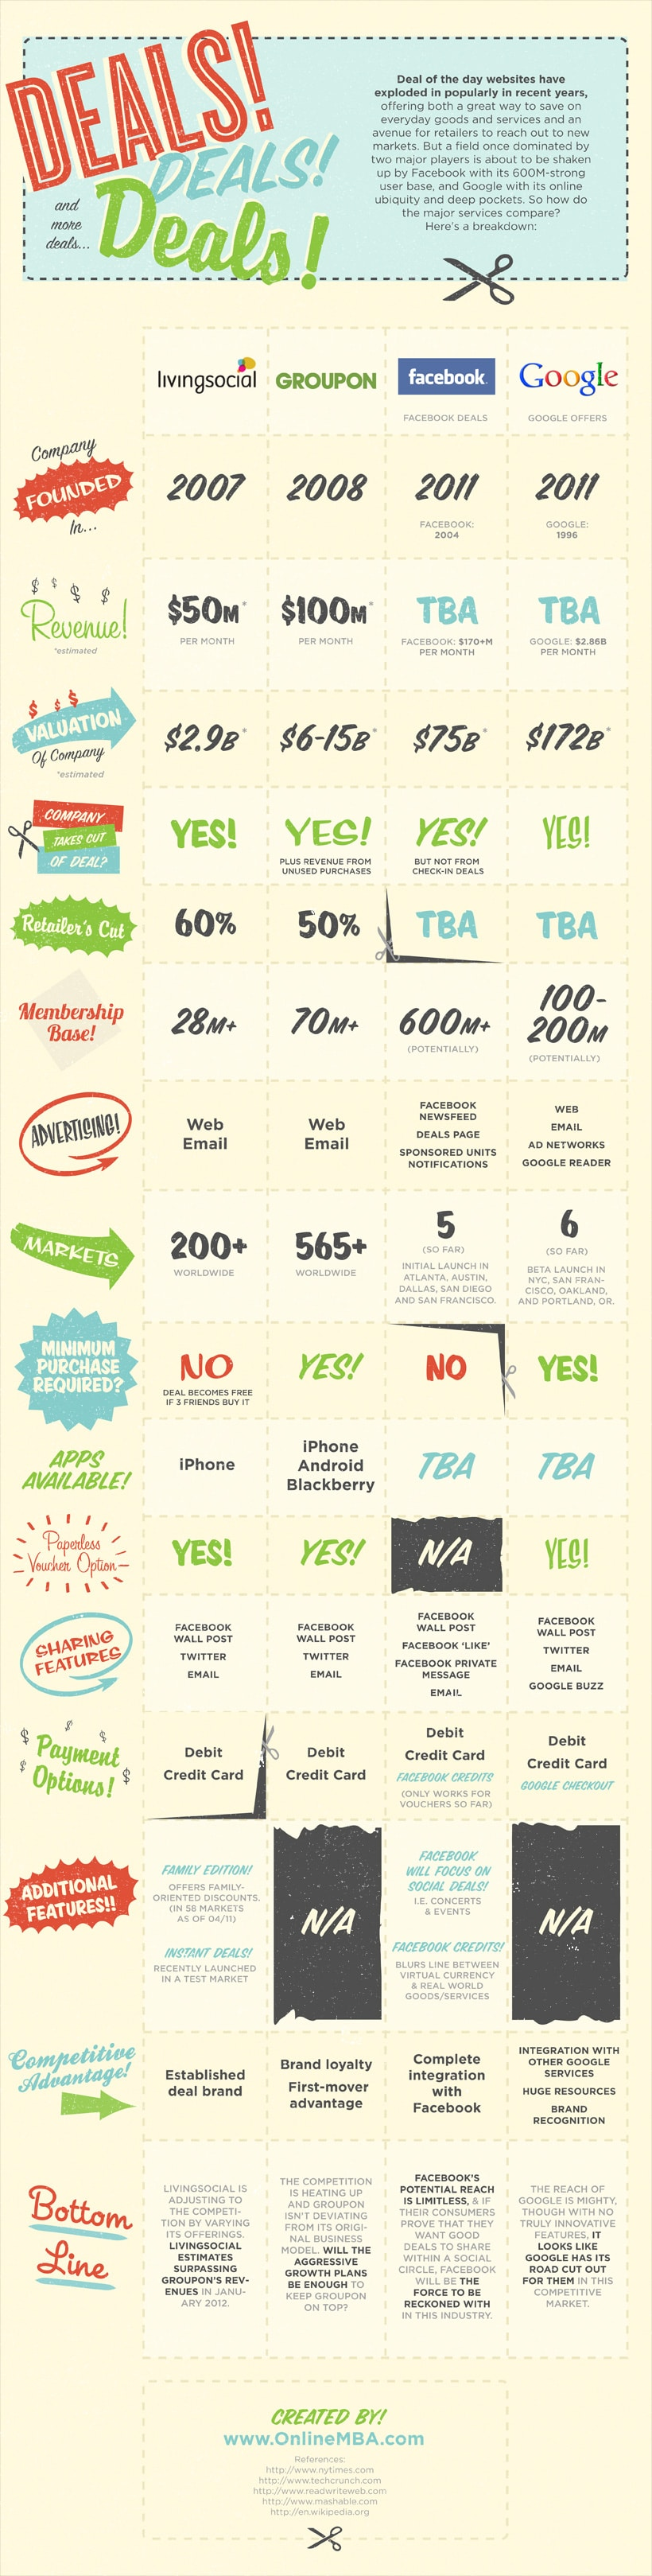 What's The Deal: Groupon Businesses Compared [Infographic]